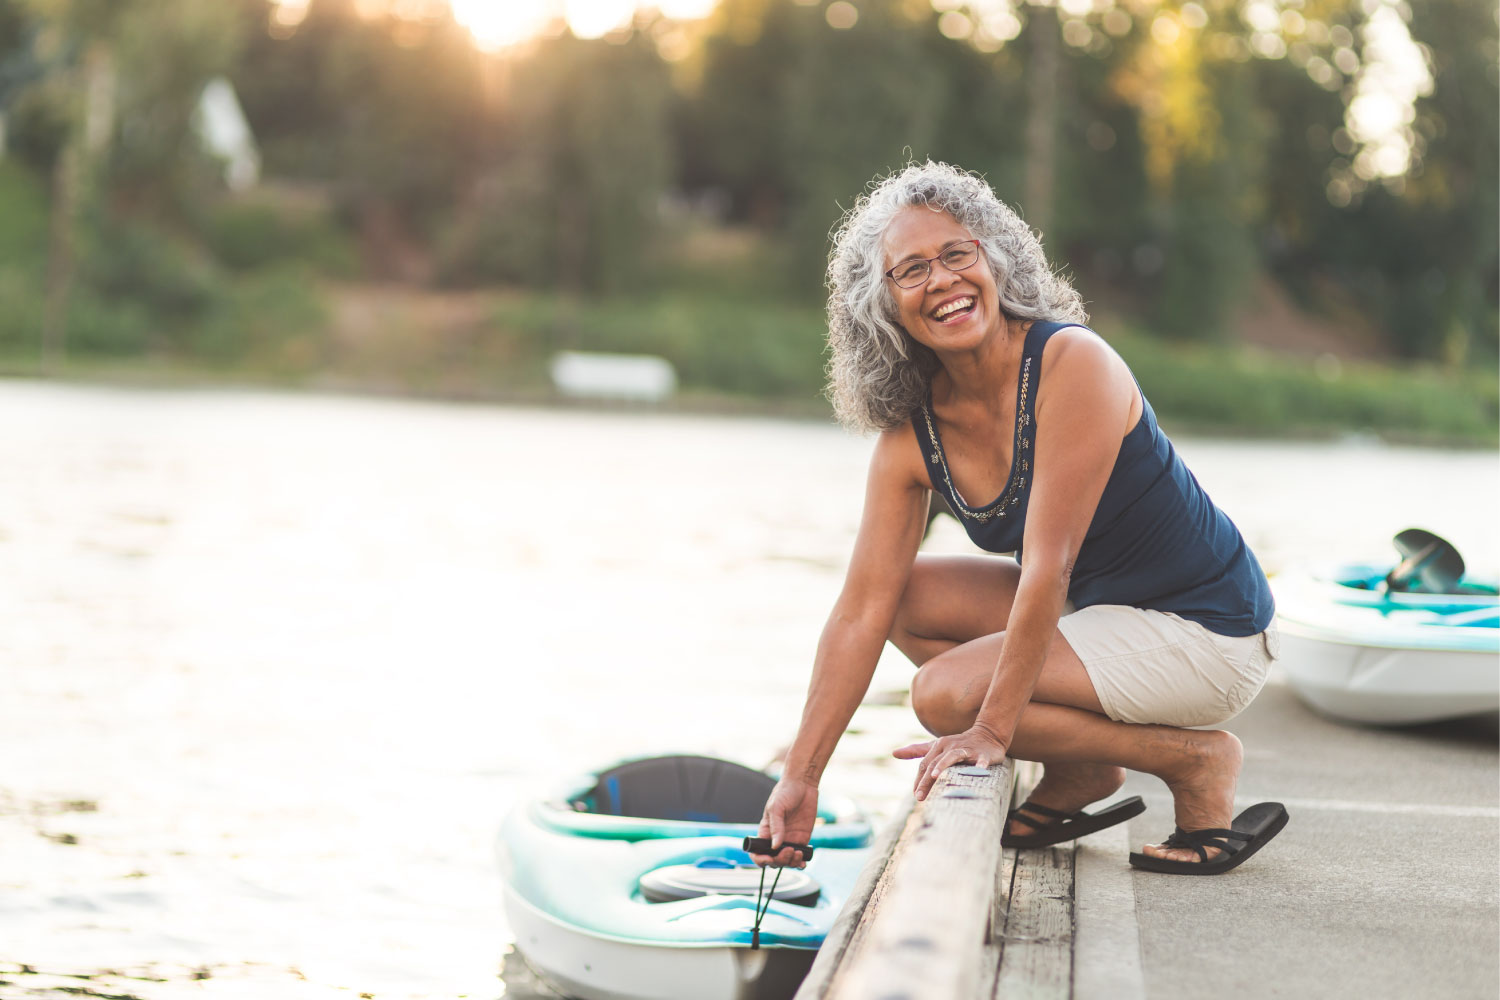 Woman with dentures smiles while holding her kayak on a lake after receiving care at Rockingham Prosthodontics